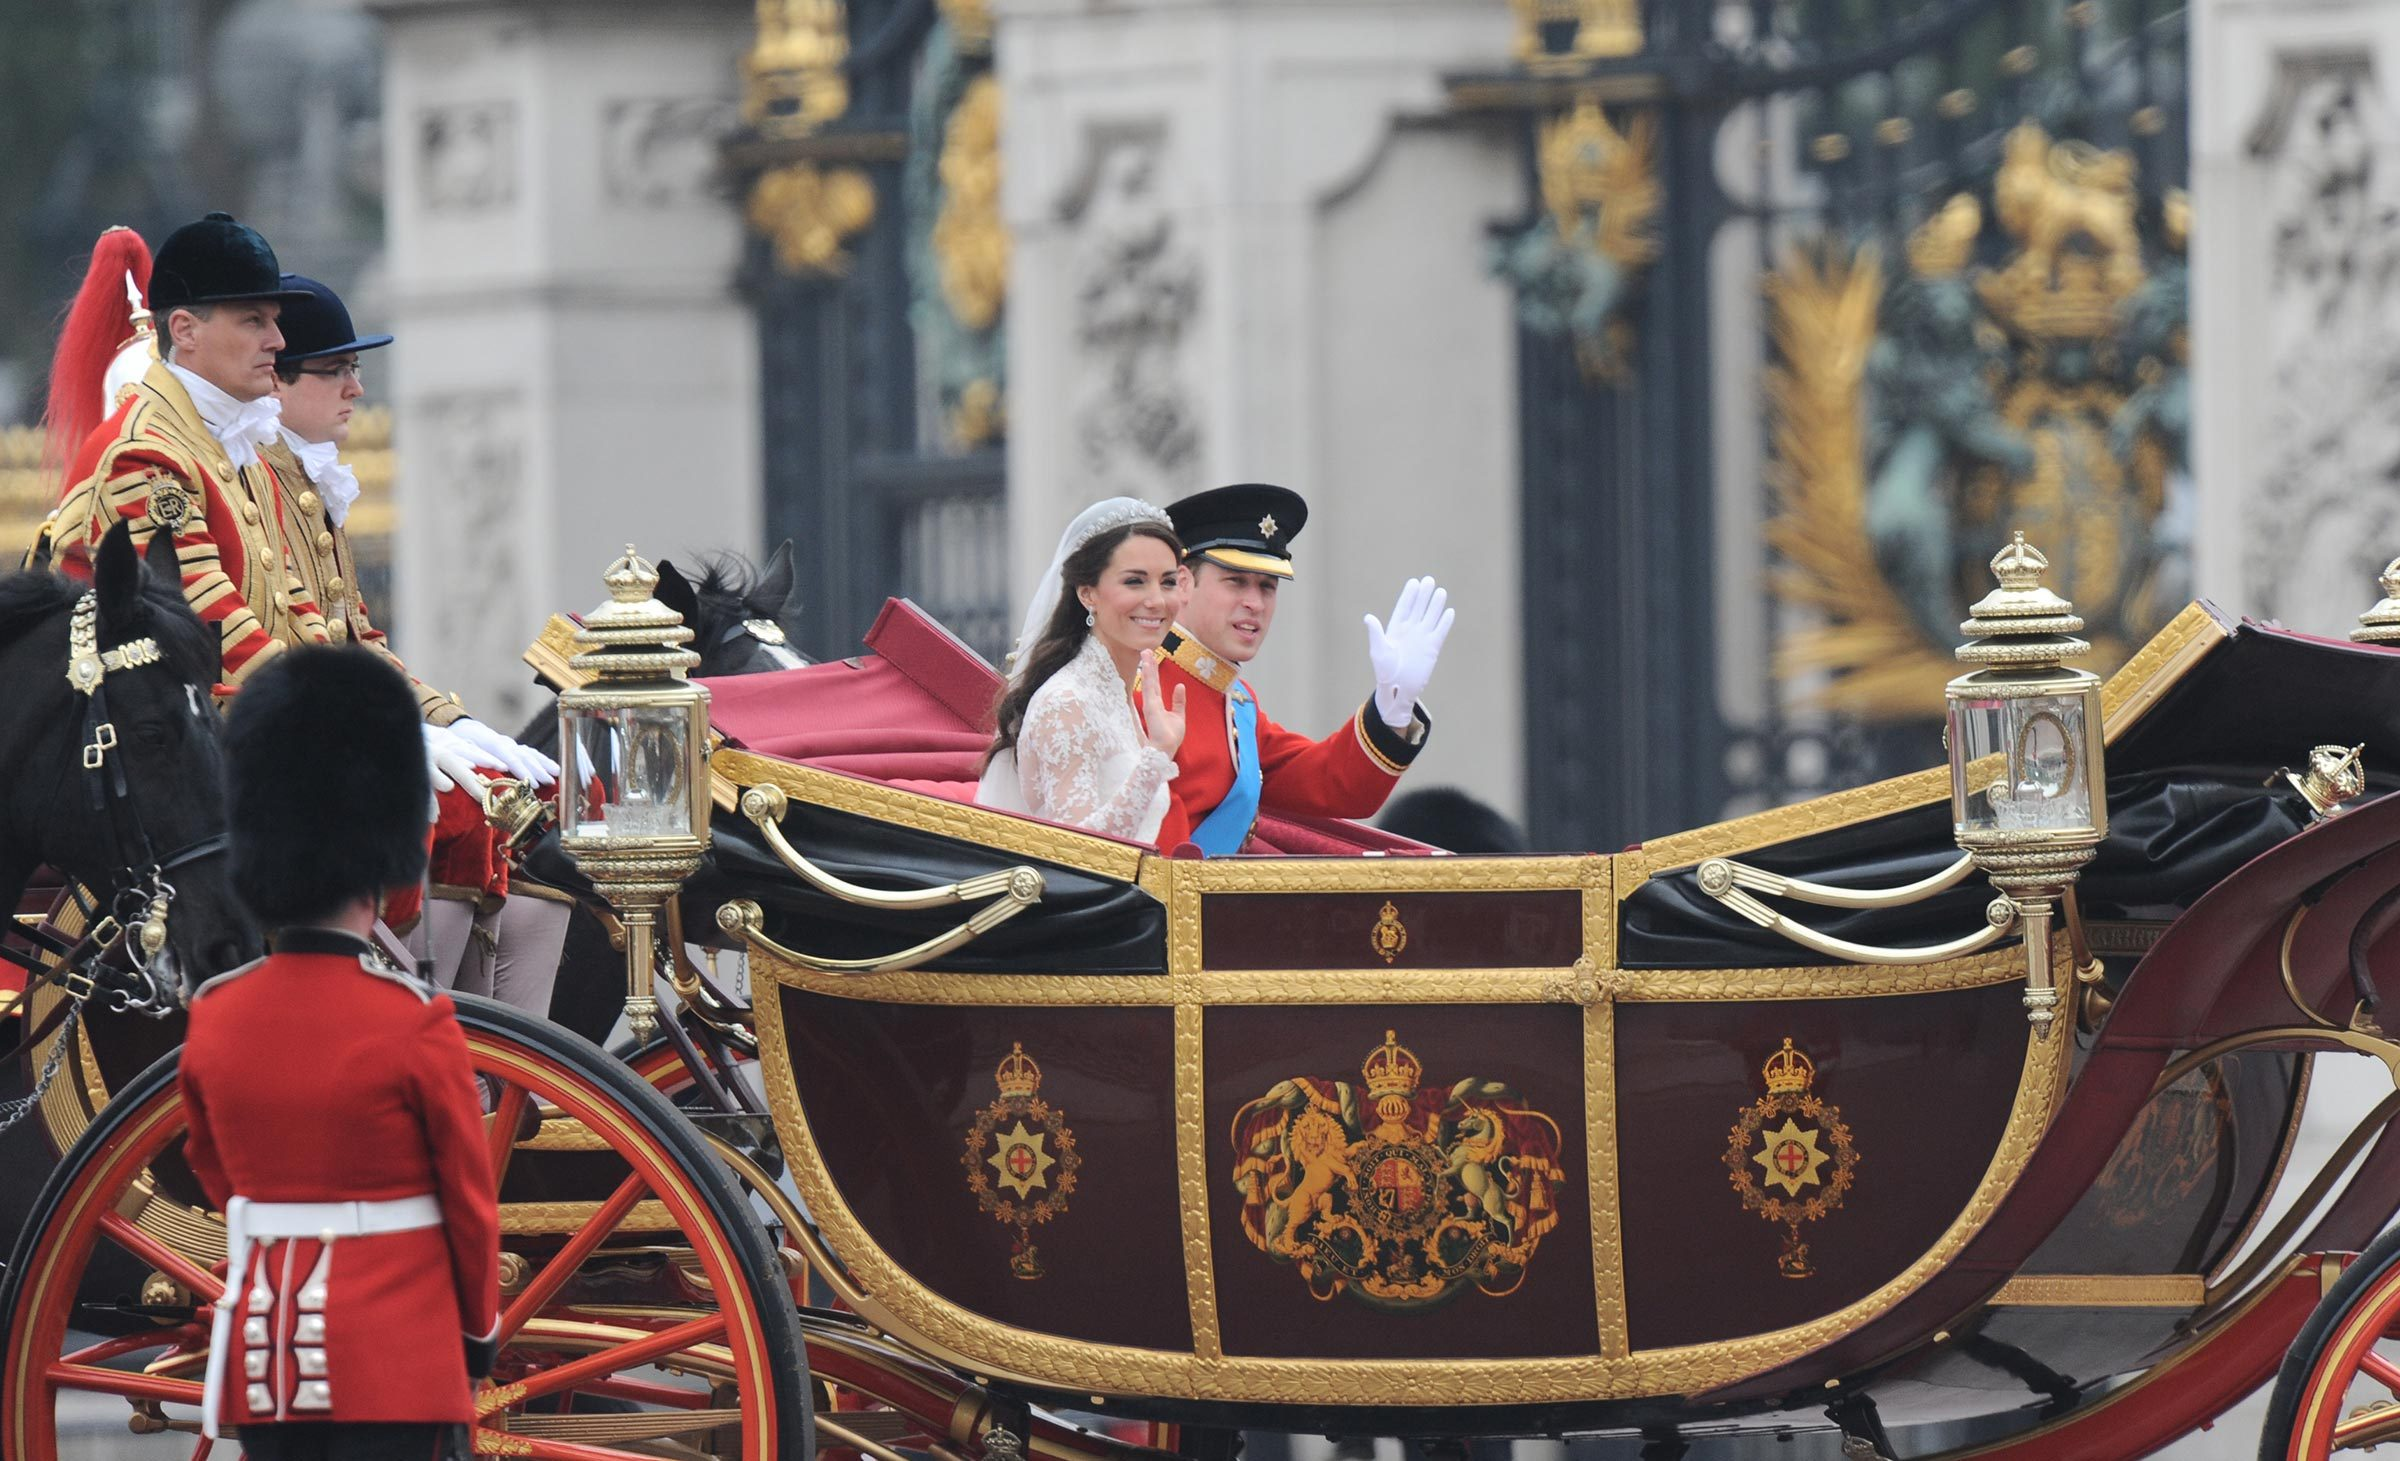 The wedding of Prince William and Catherine Middleton, London, Britain - 29 Apr 2011